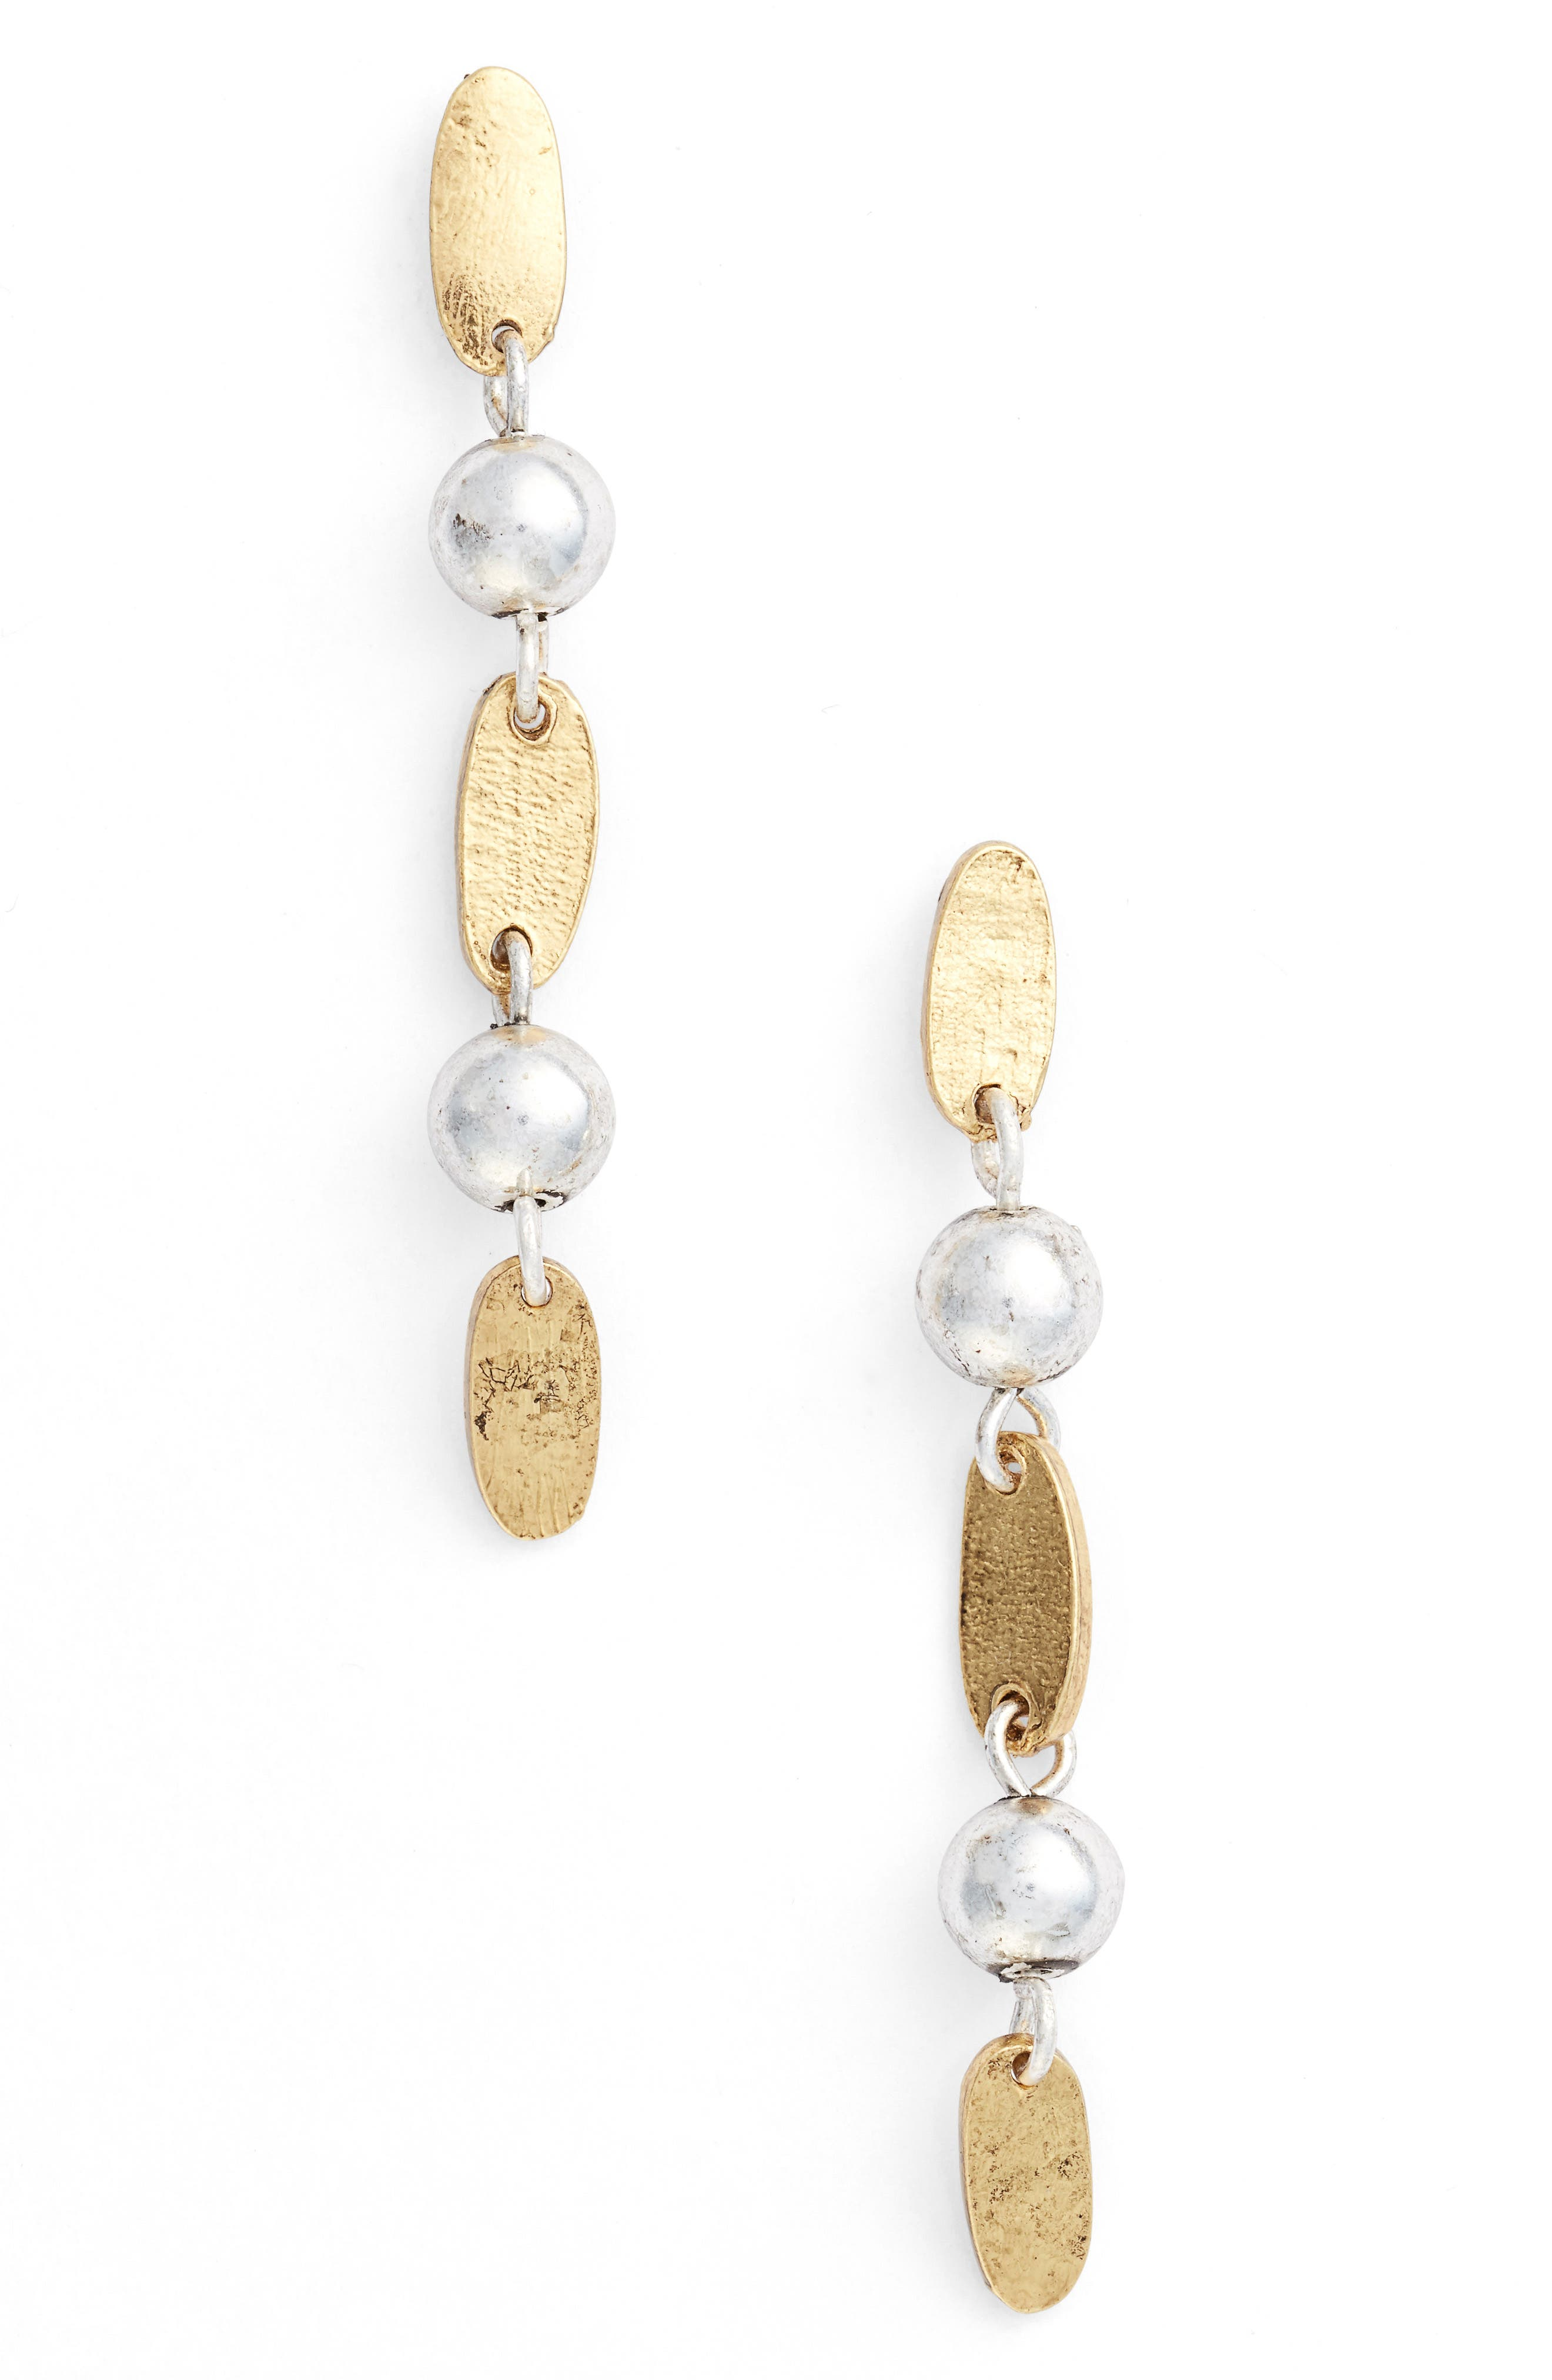 Two-Tone Linear Earrings,                             Main thumbnail 1, color,                             GOLD/SILVER MIX